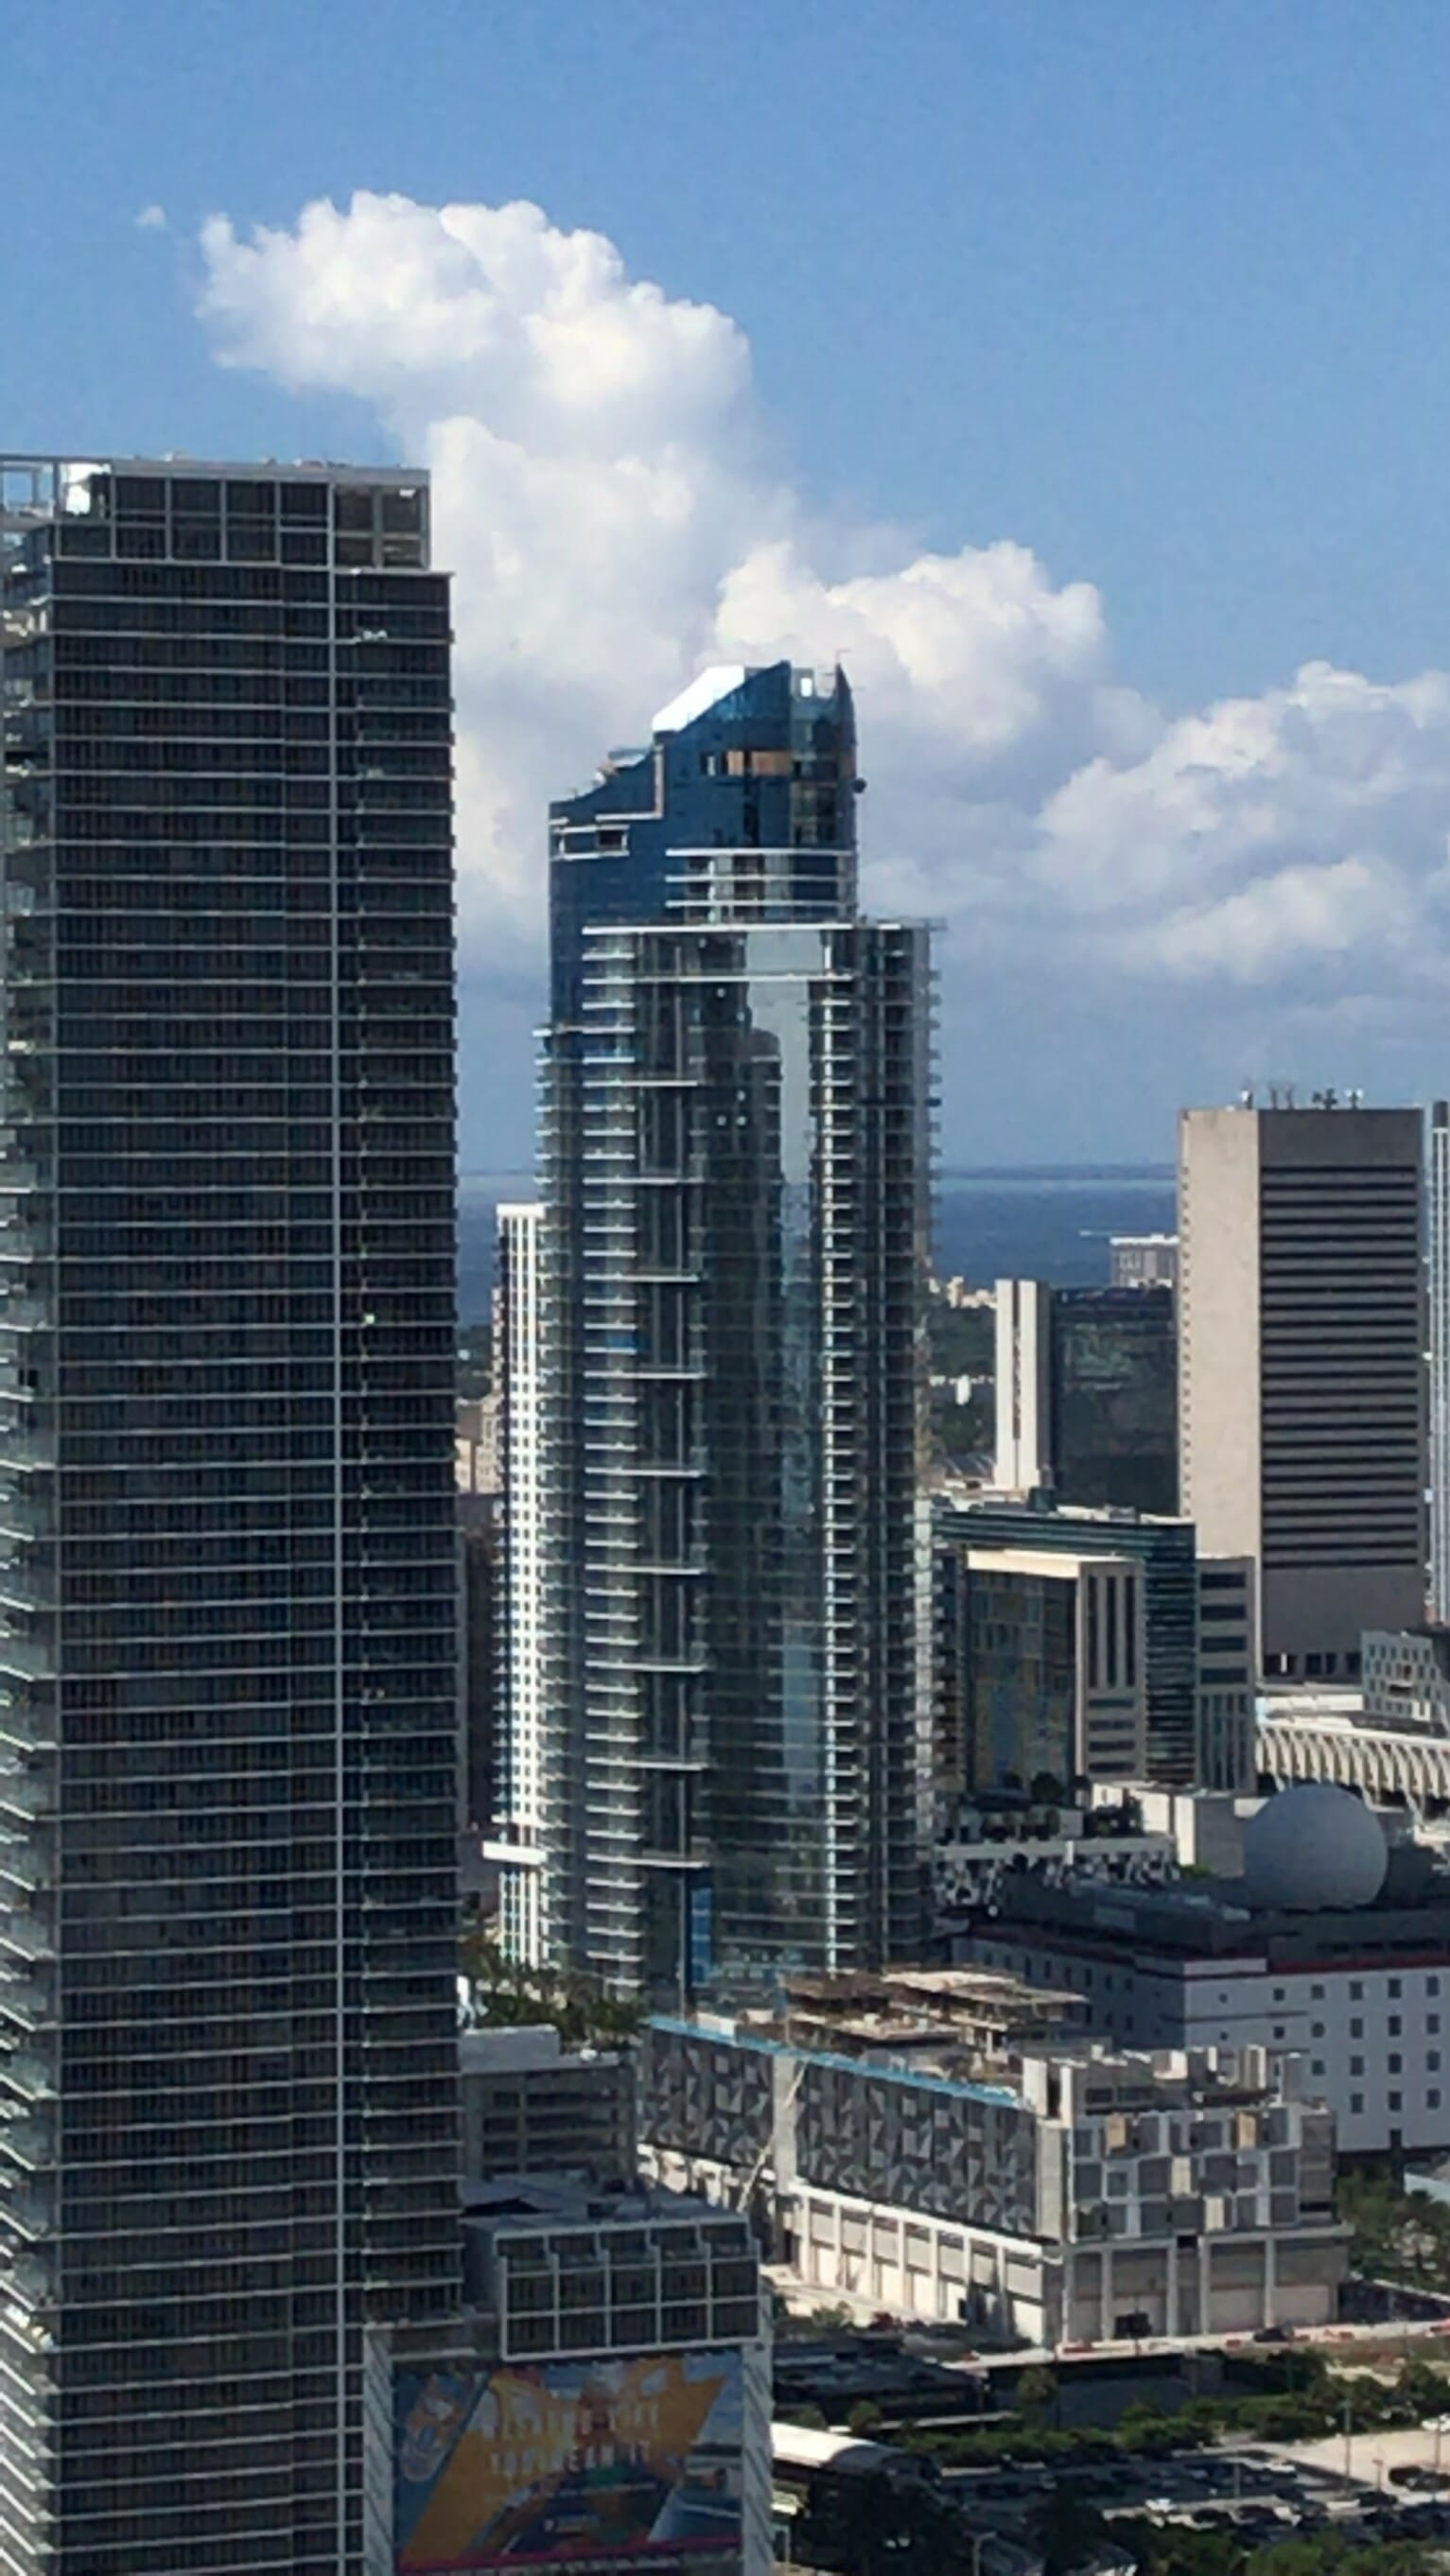 Over 100 units closed already at Paramount Miami Worldcenter only few weeks after opening